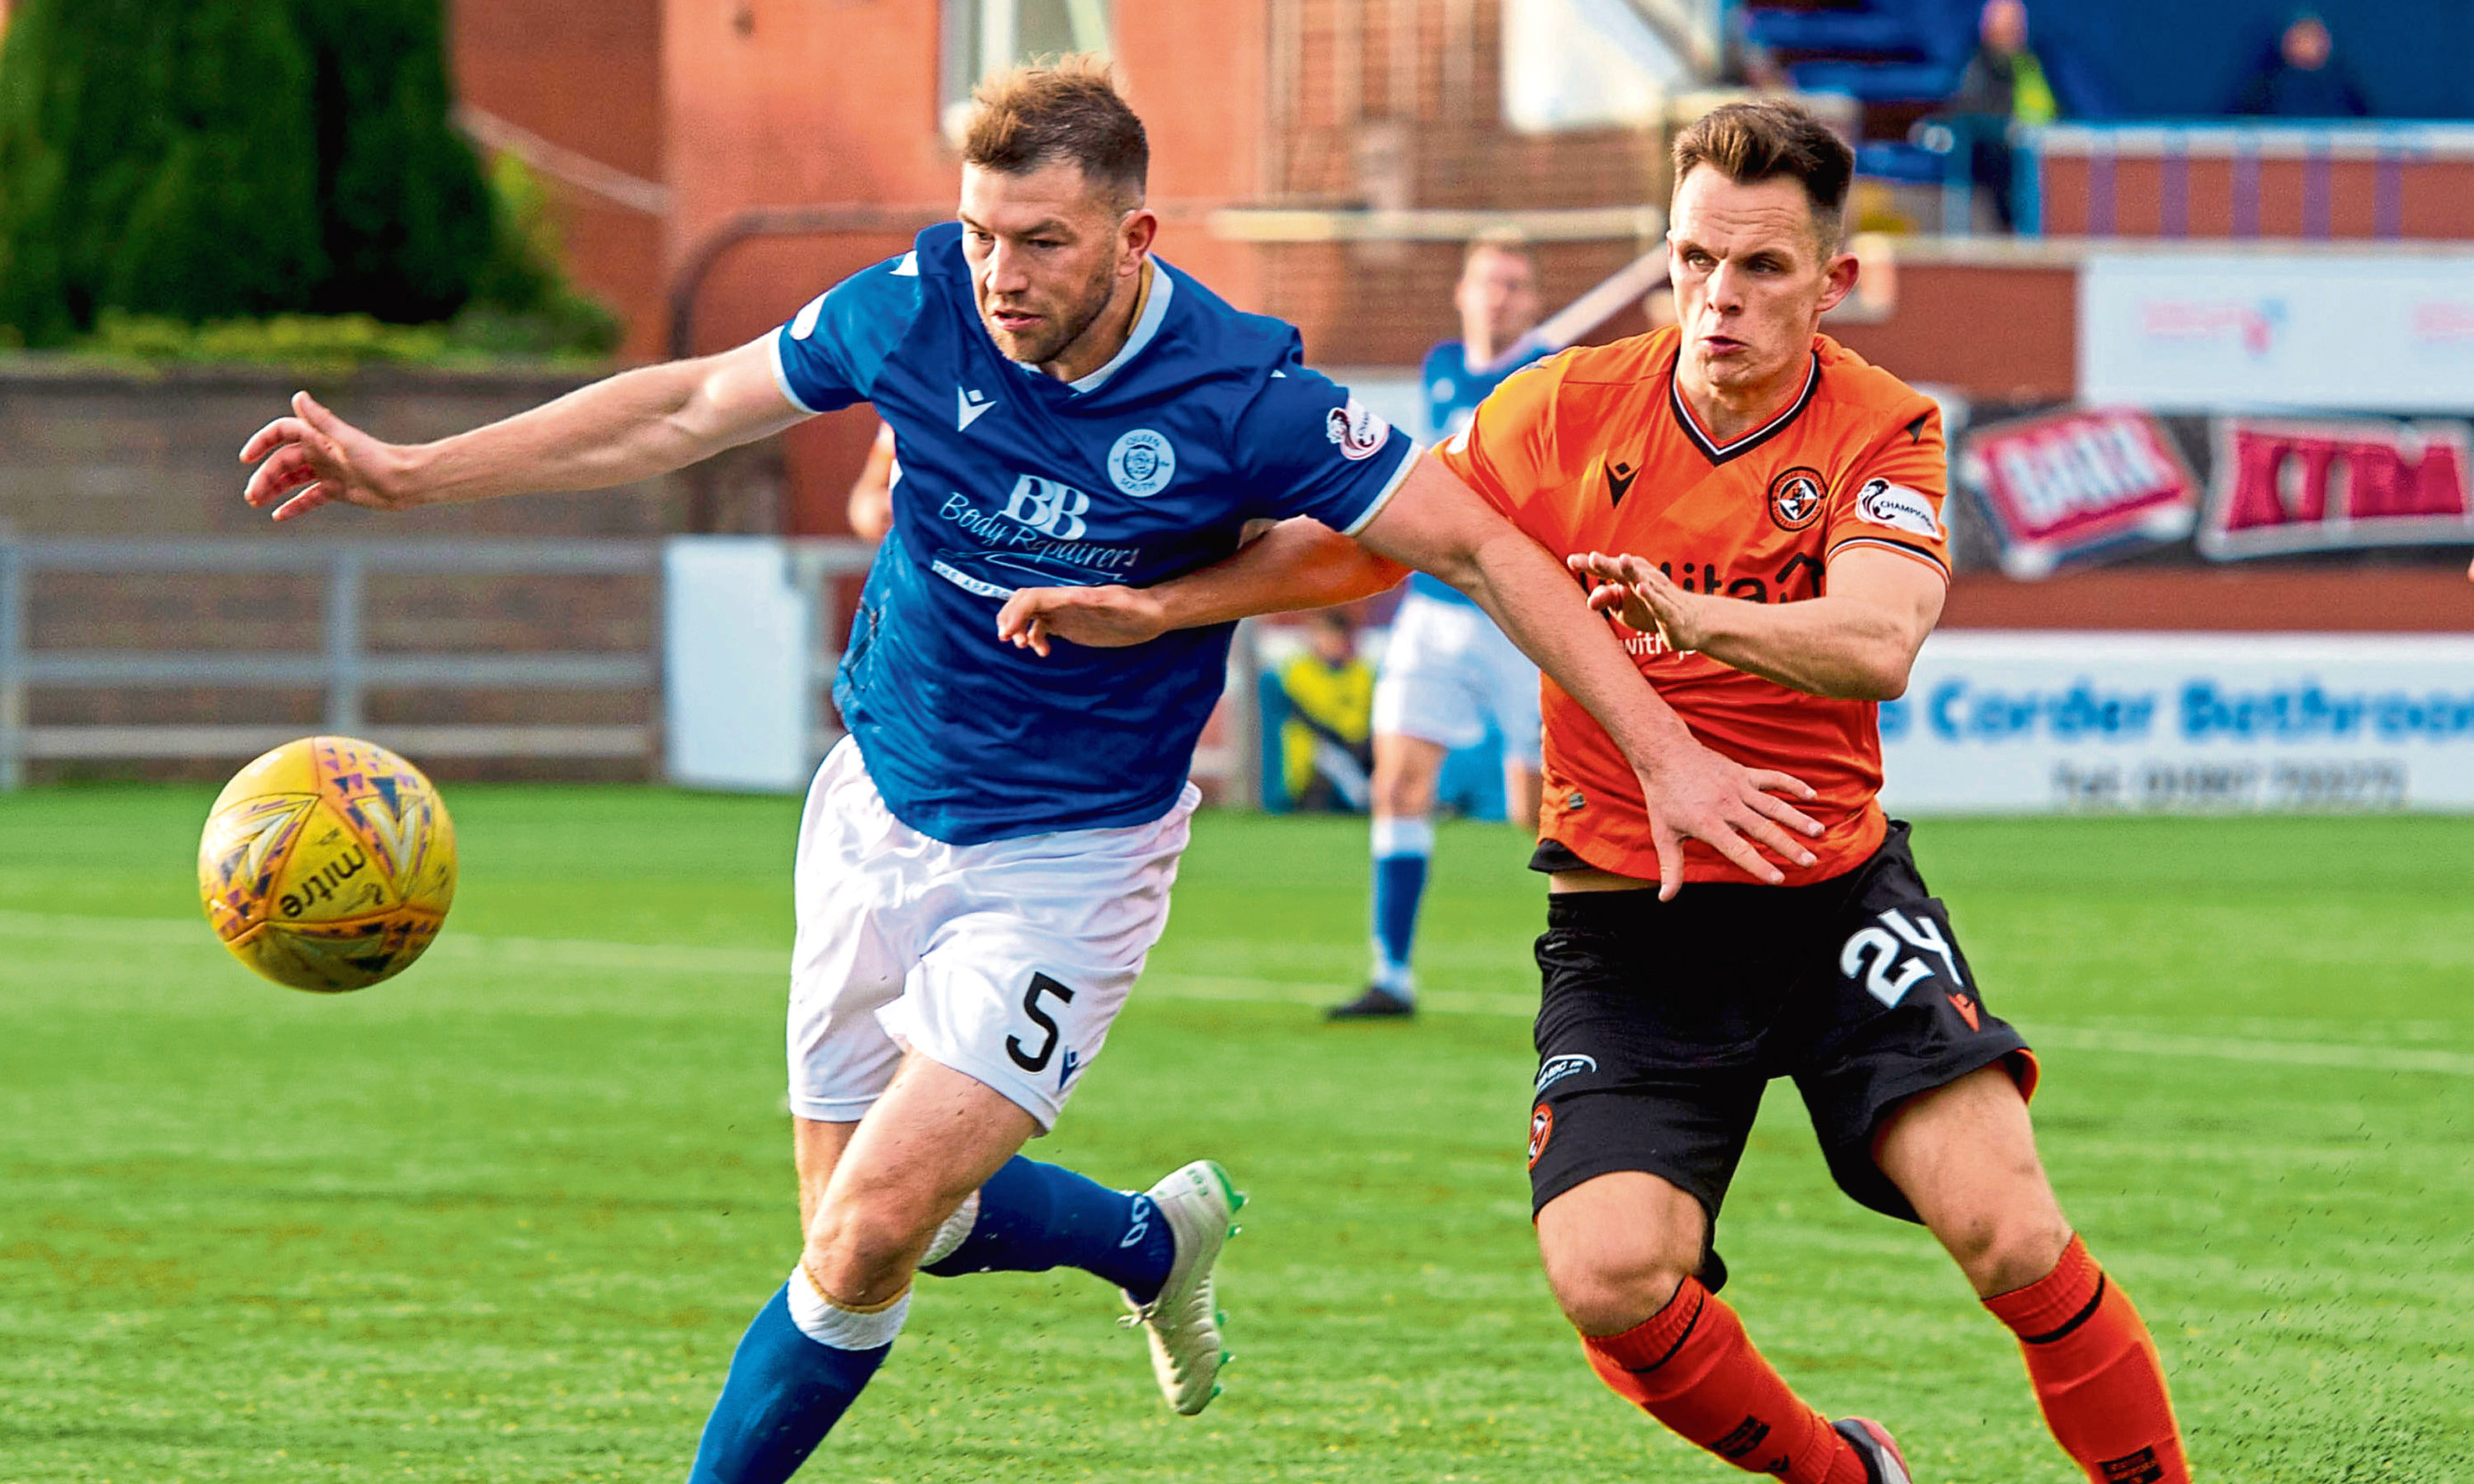 Dundee United's Lawrence Shankland (right) competes with Darren Brownlie in October.